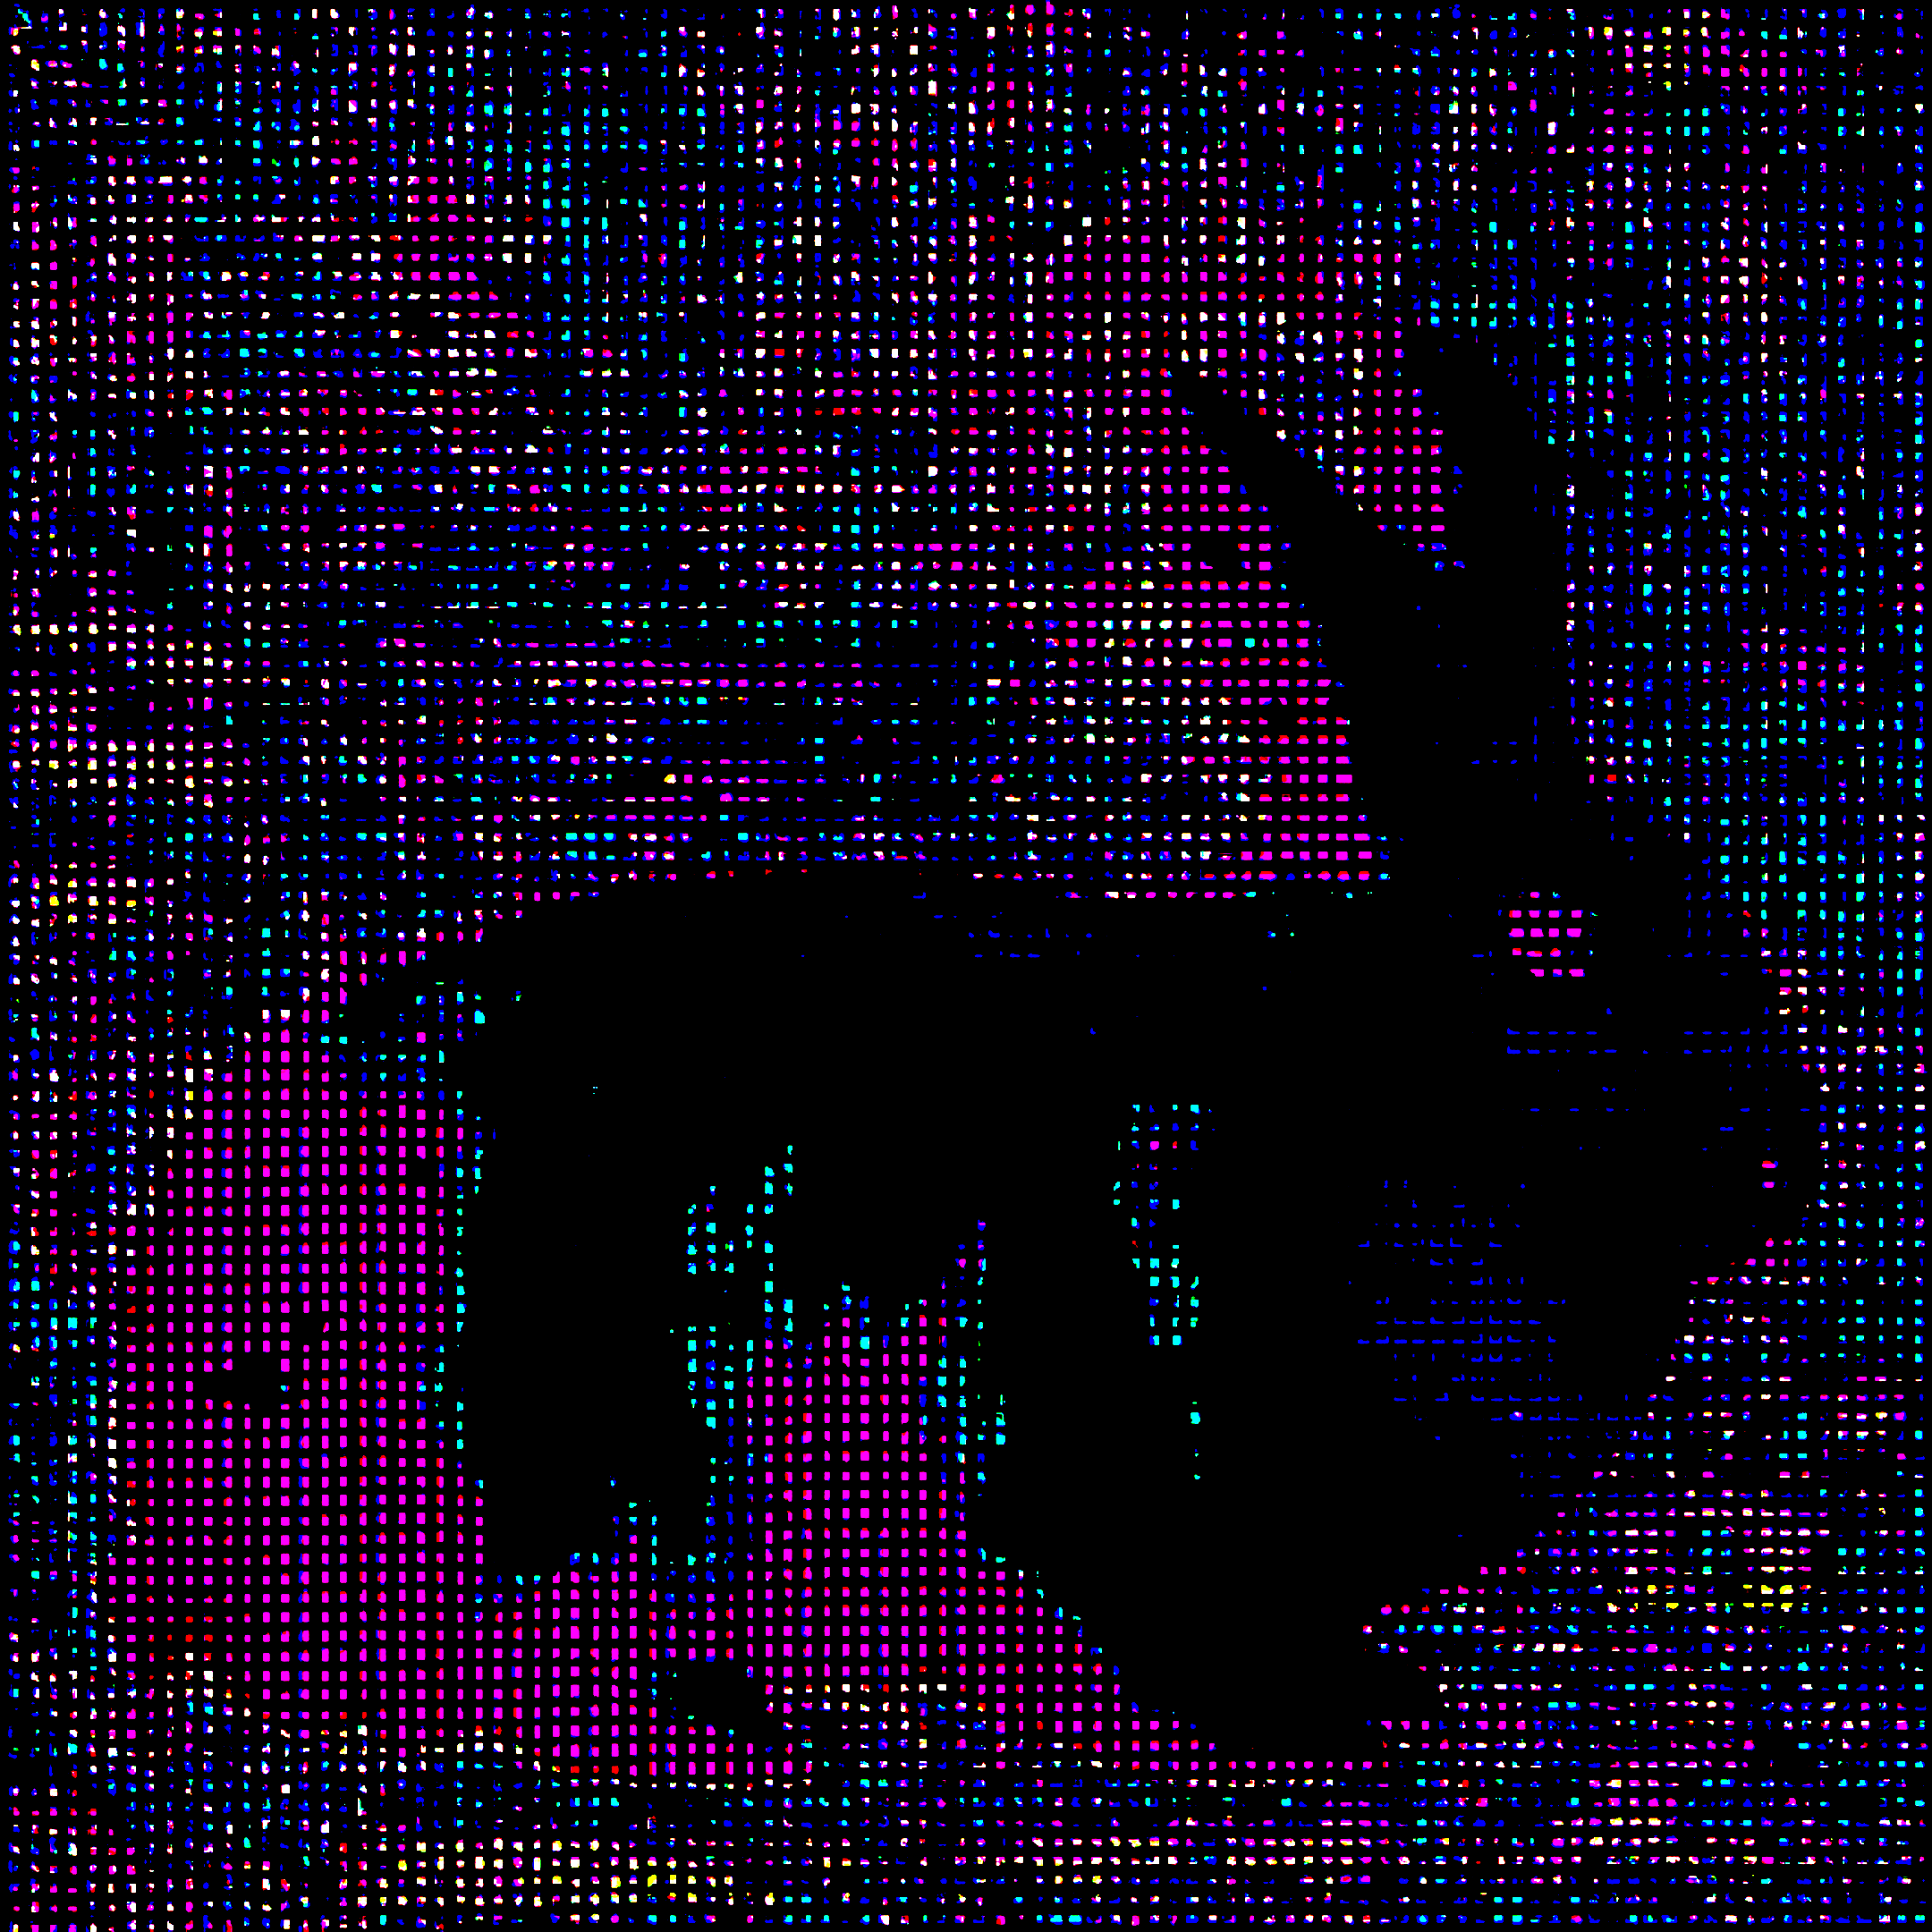 white.Rabbit, Day 13 (Beyond the Matrix)